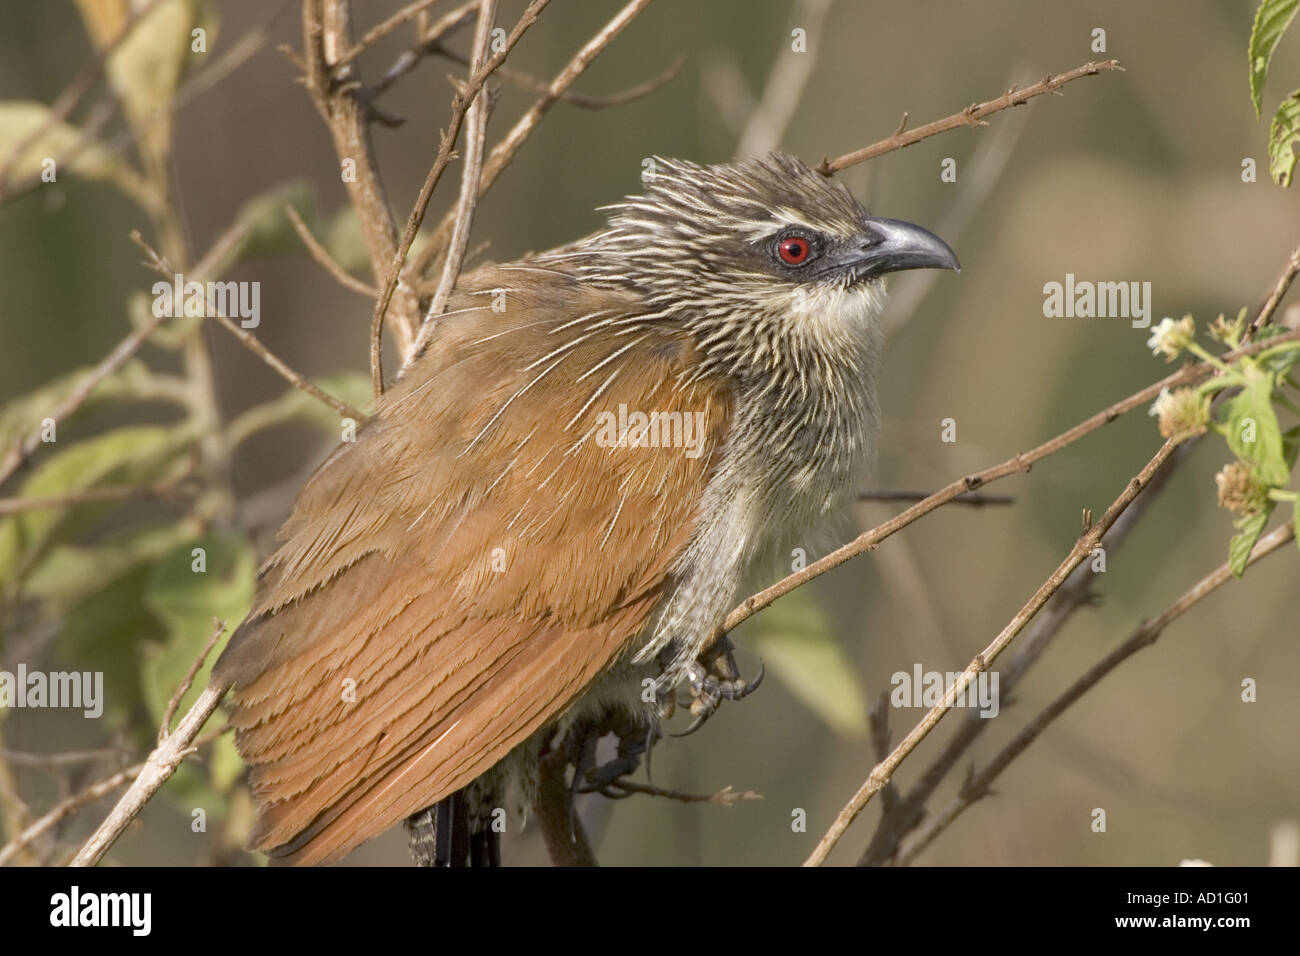 White browed Coucal Ngorongoro Crater Tanzania Centropus supercillosus calling - Stock Image